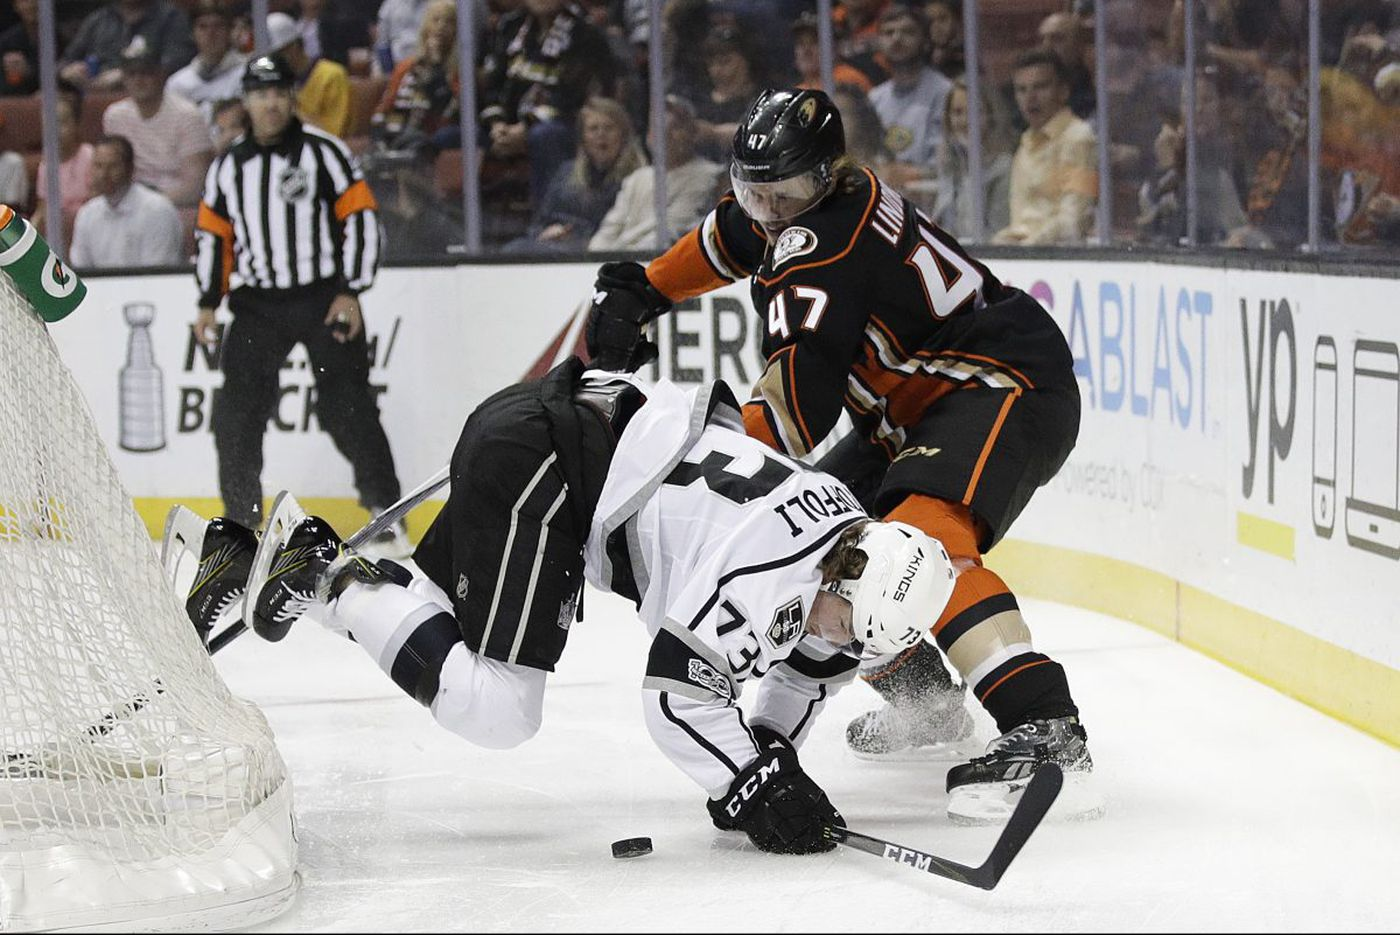 Flyers-Ducks preview: Lindholm, Getzlaf return, Fowler out